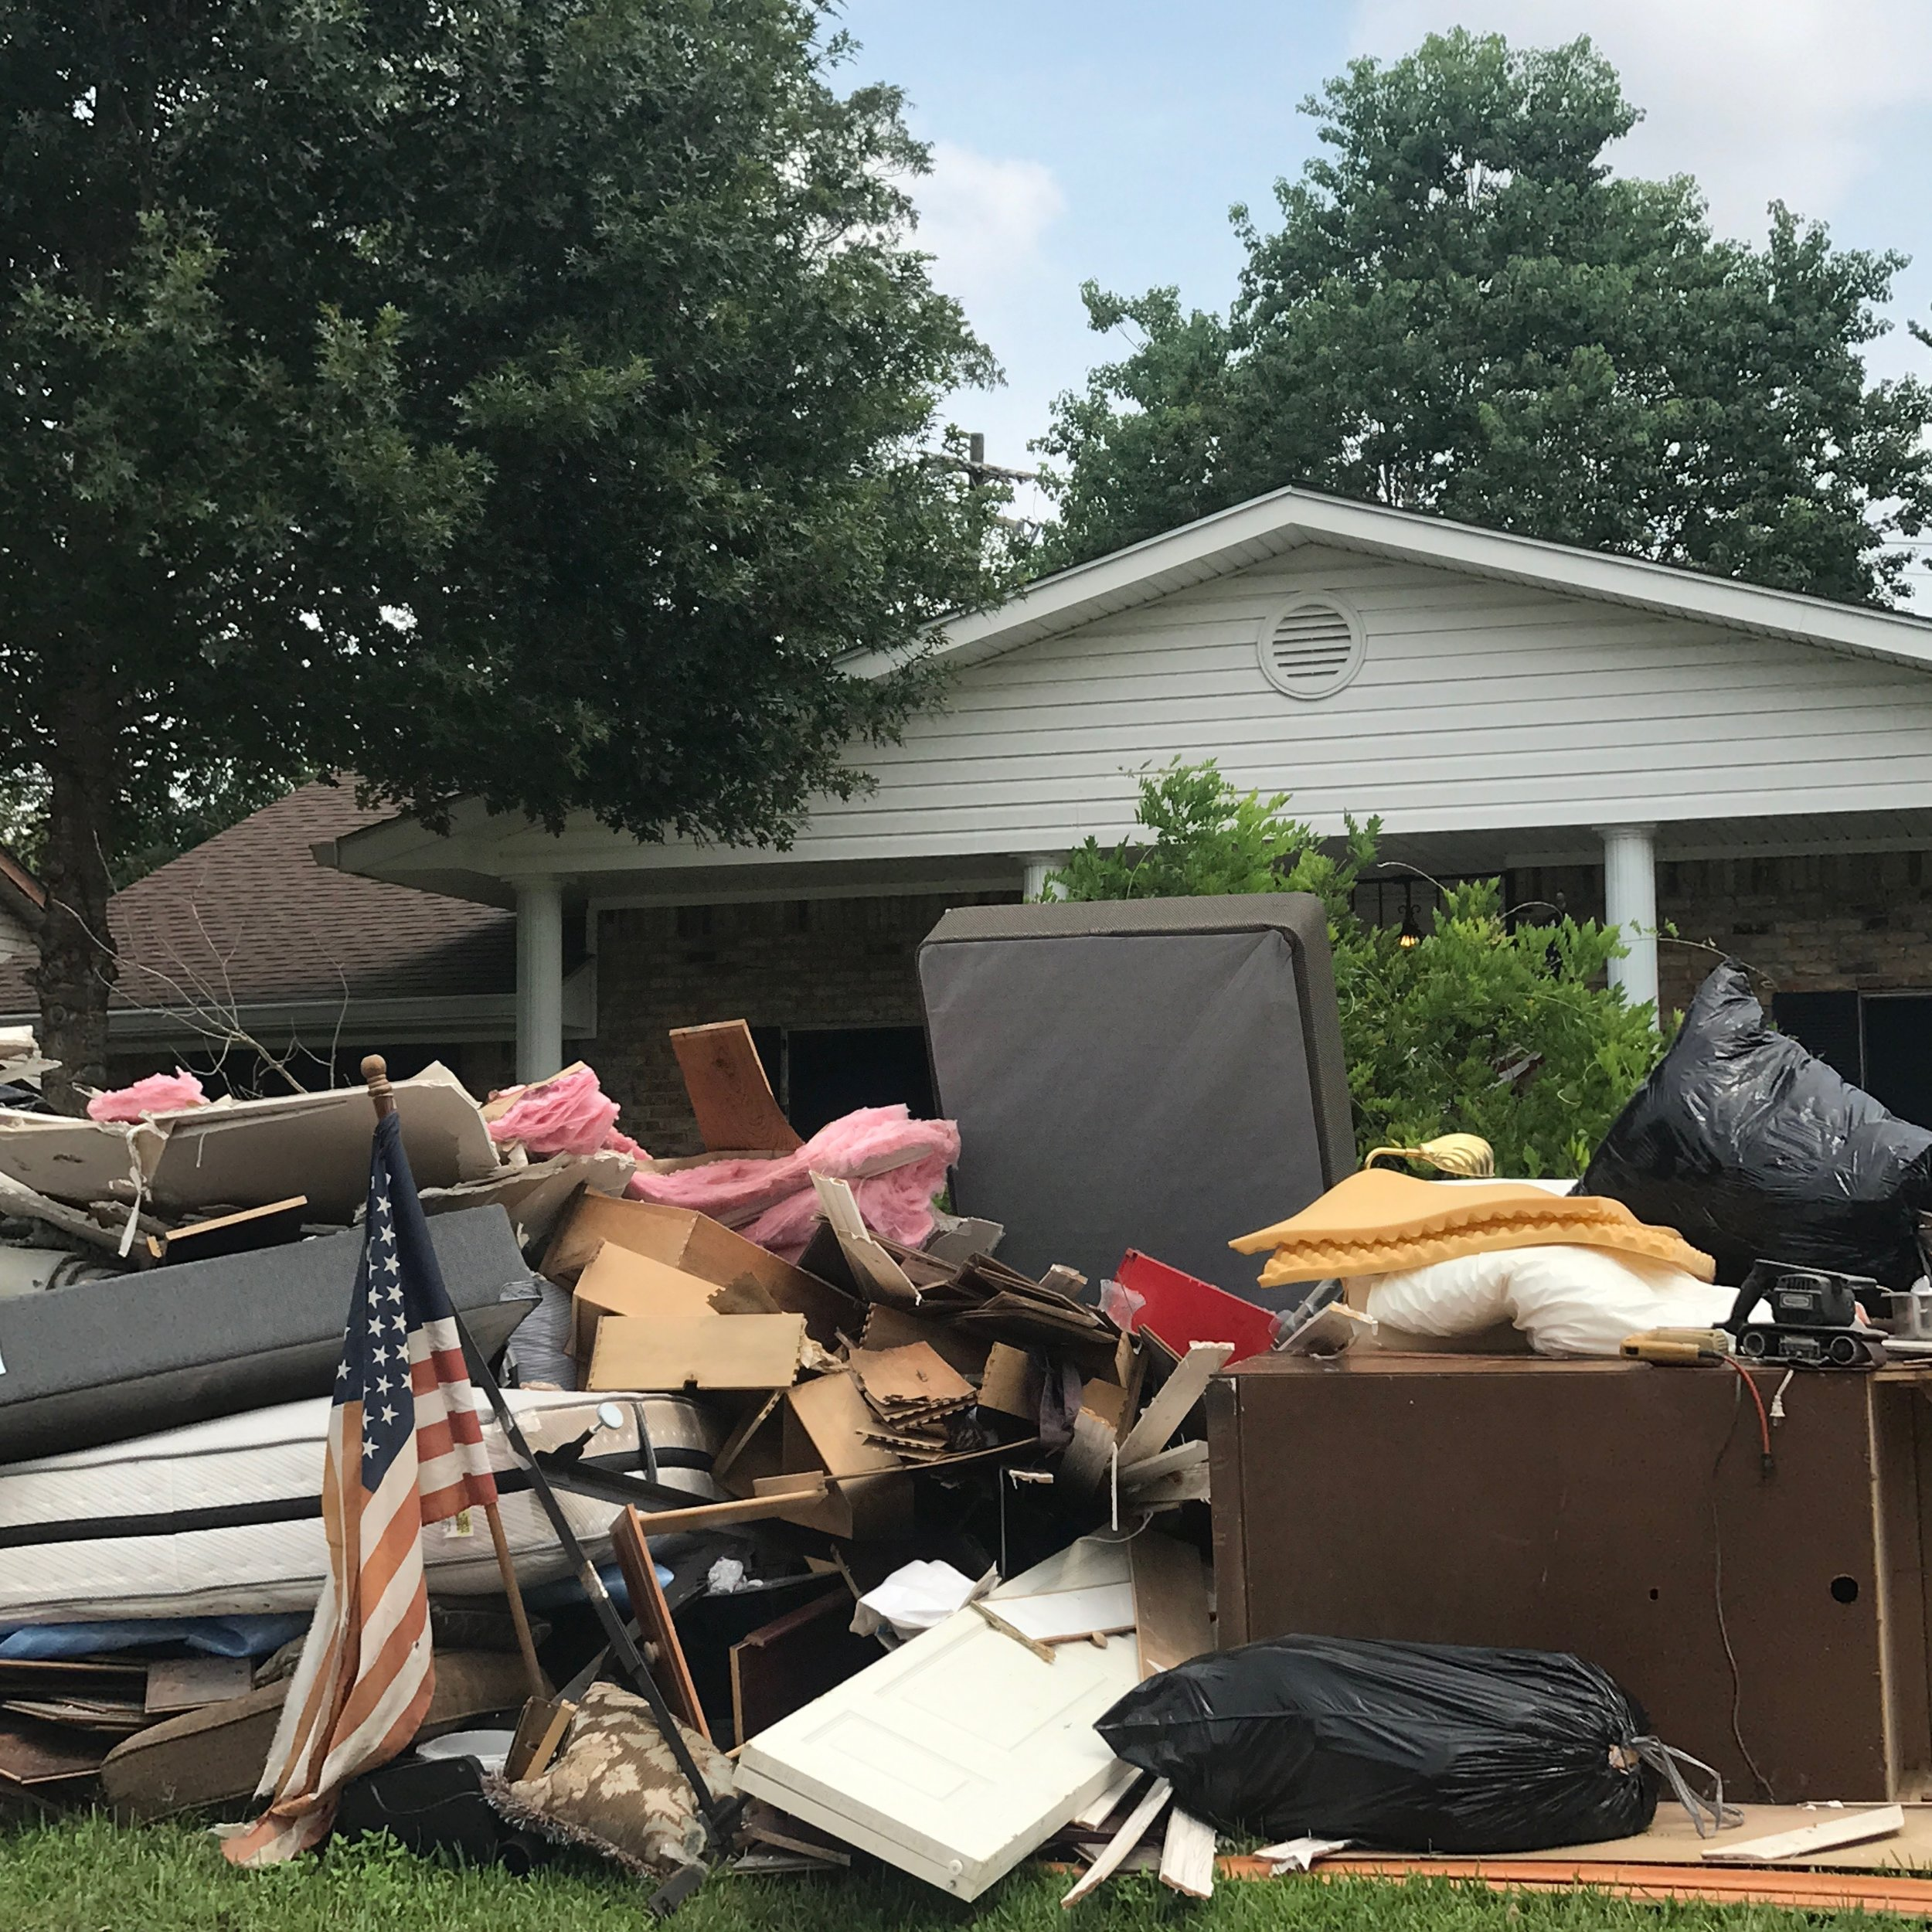 This is devastation. But our city has not lost its hope. Photo Cred: Lindsee (the photojournalist of all of our flood experiences)